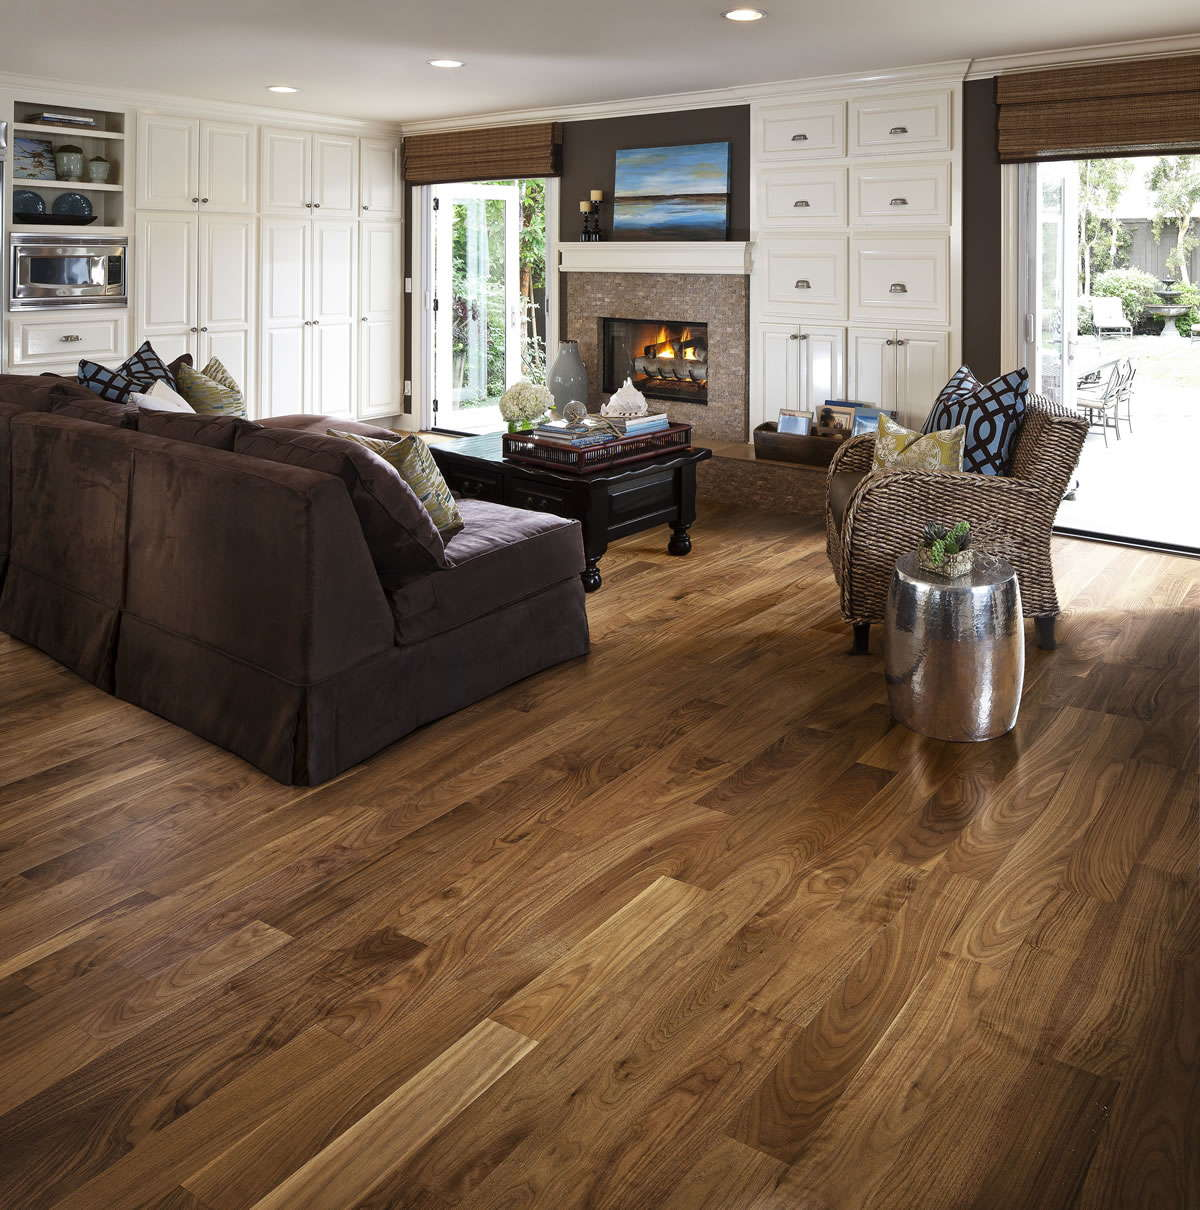 Kahrs Walnut Philadelphia Engineered Wood Flooring - Walnut Philadelphia Engineered Wood Flooring